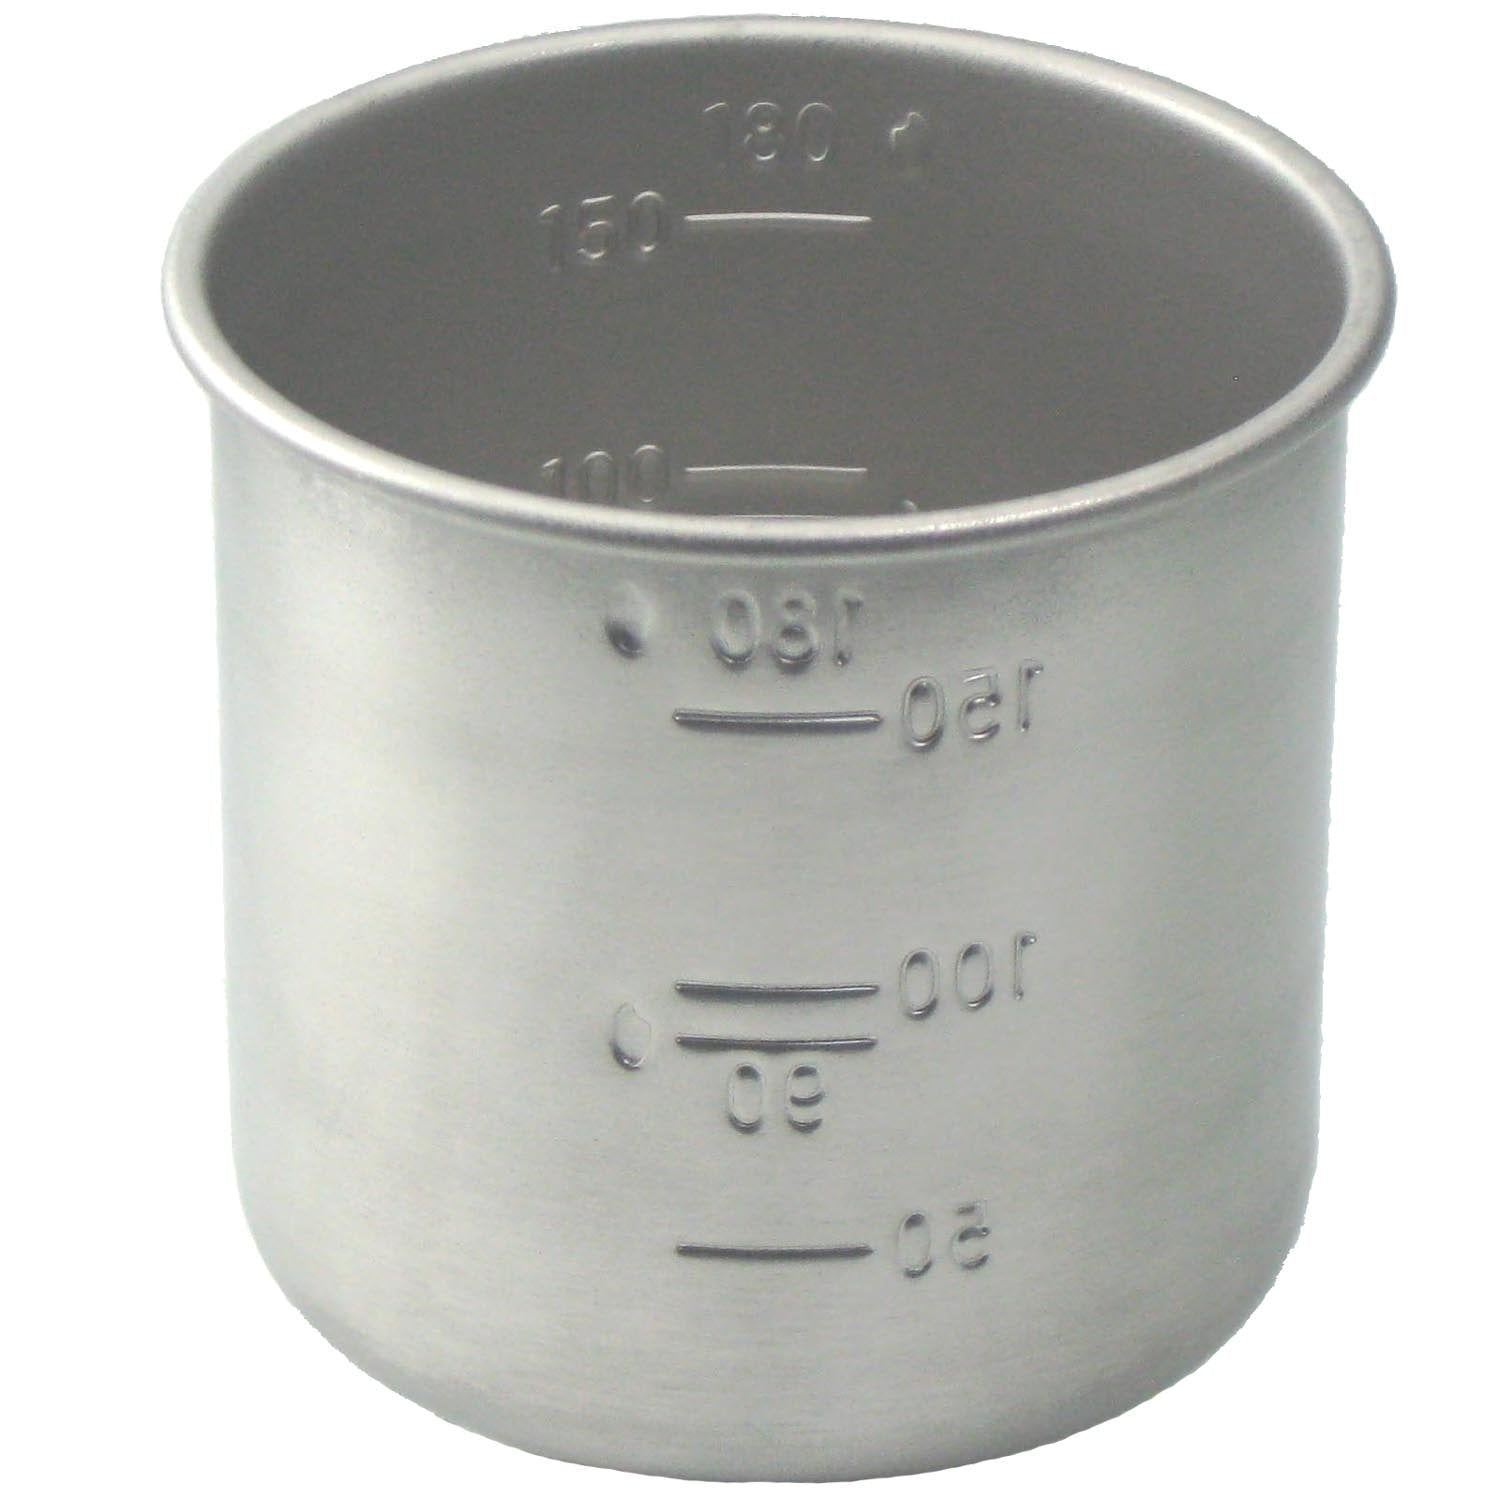 Daiso Japanese Rice Measuring Cup(180cc = 1 Gou Cup) Stainless Steel